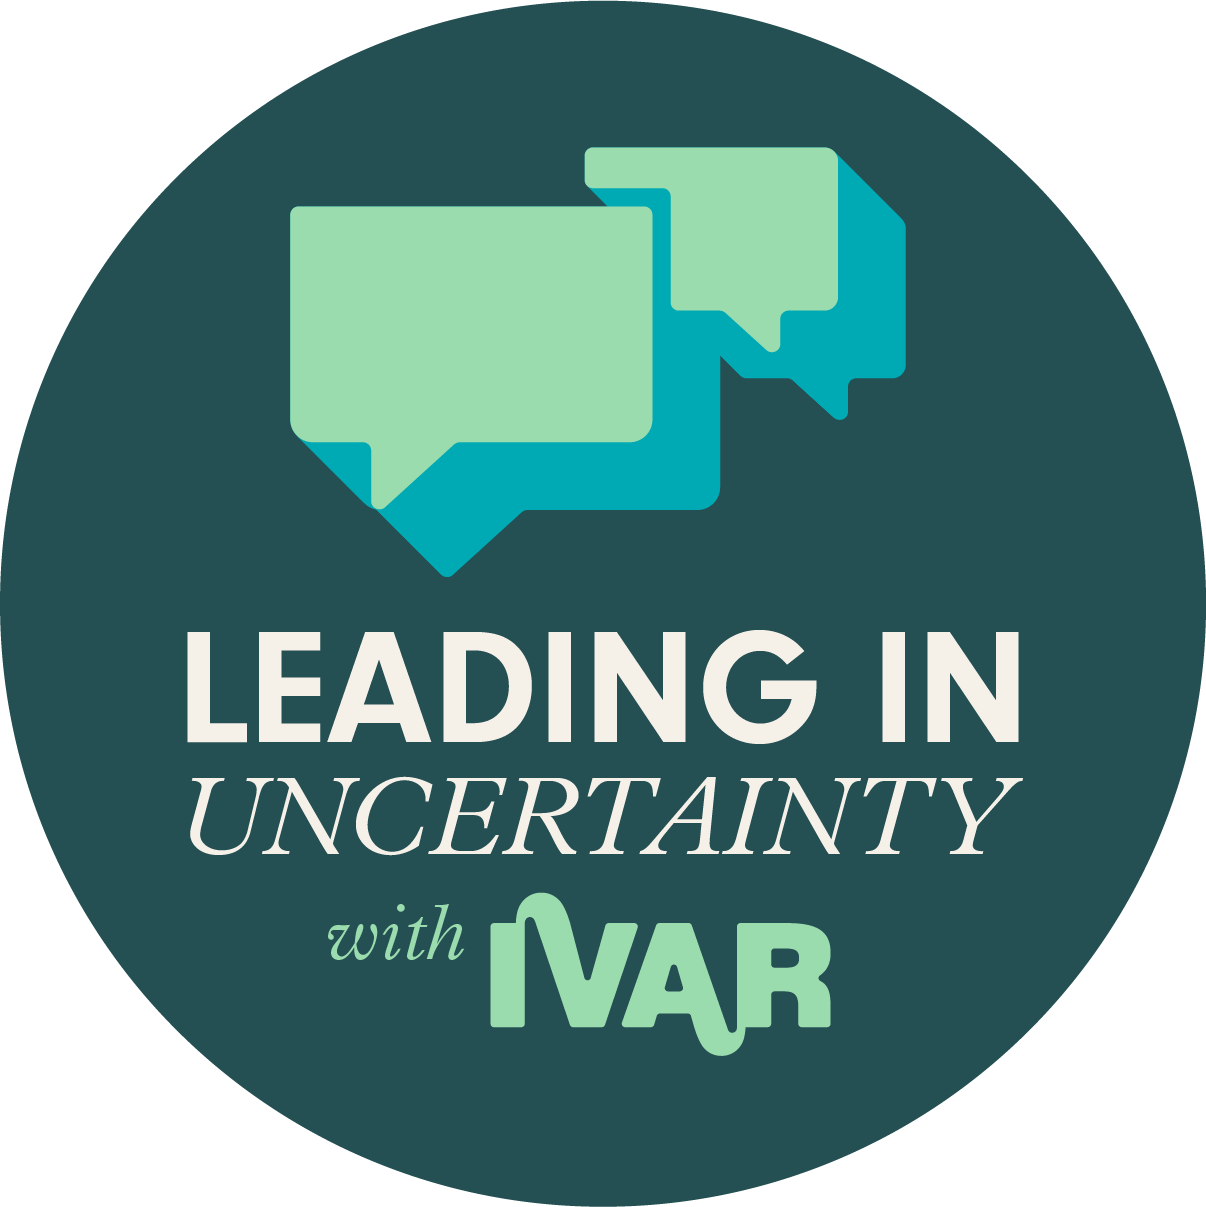 Leading in uncertainty